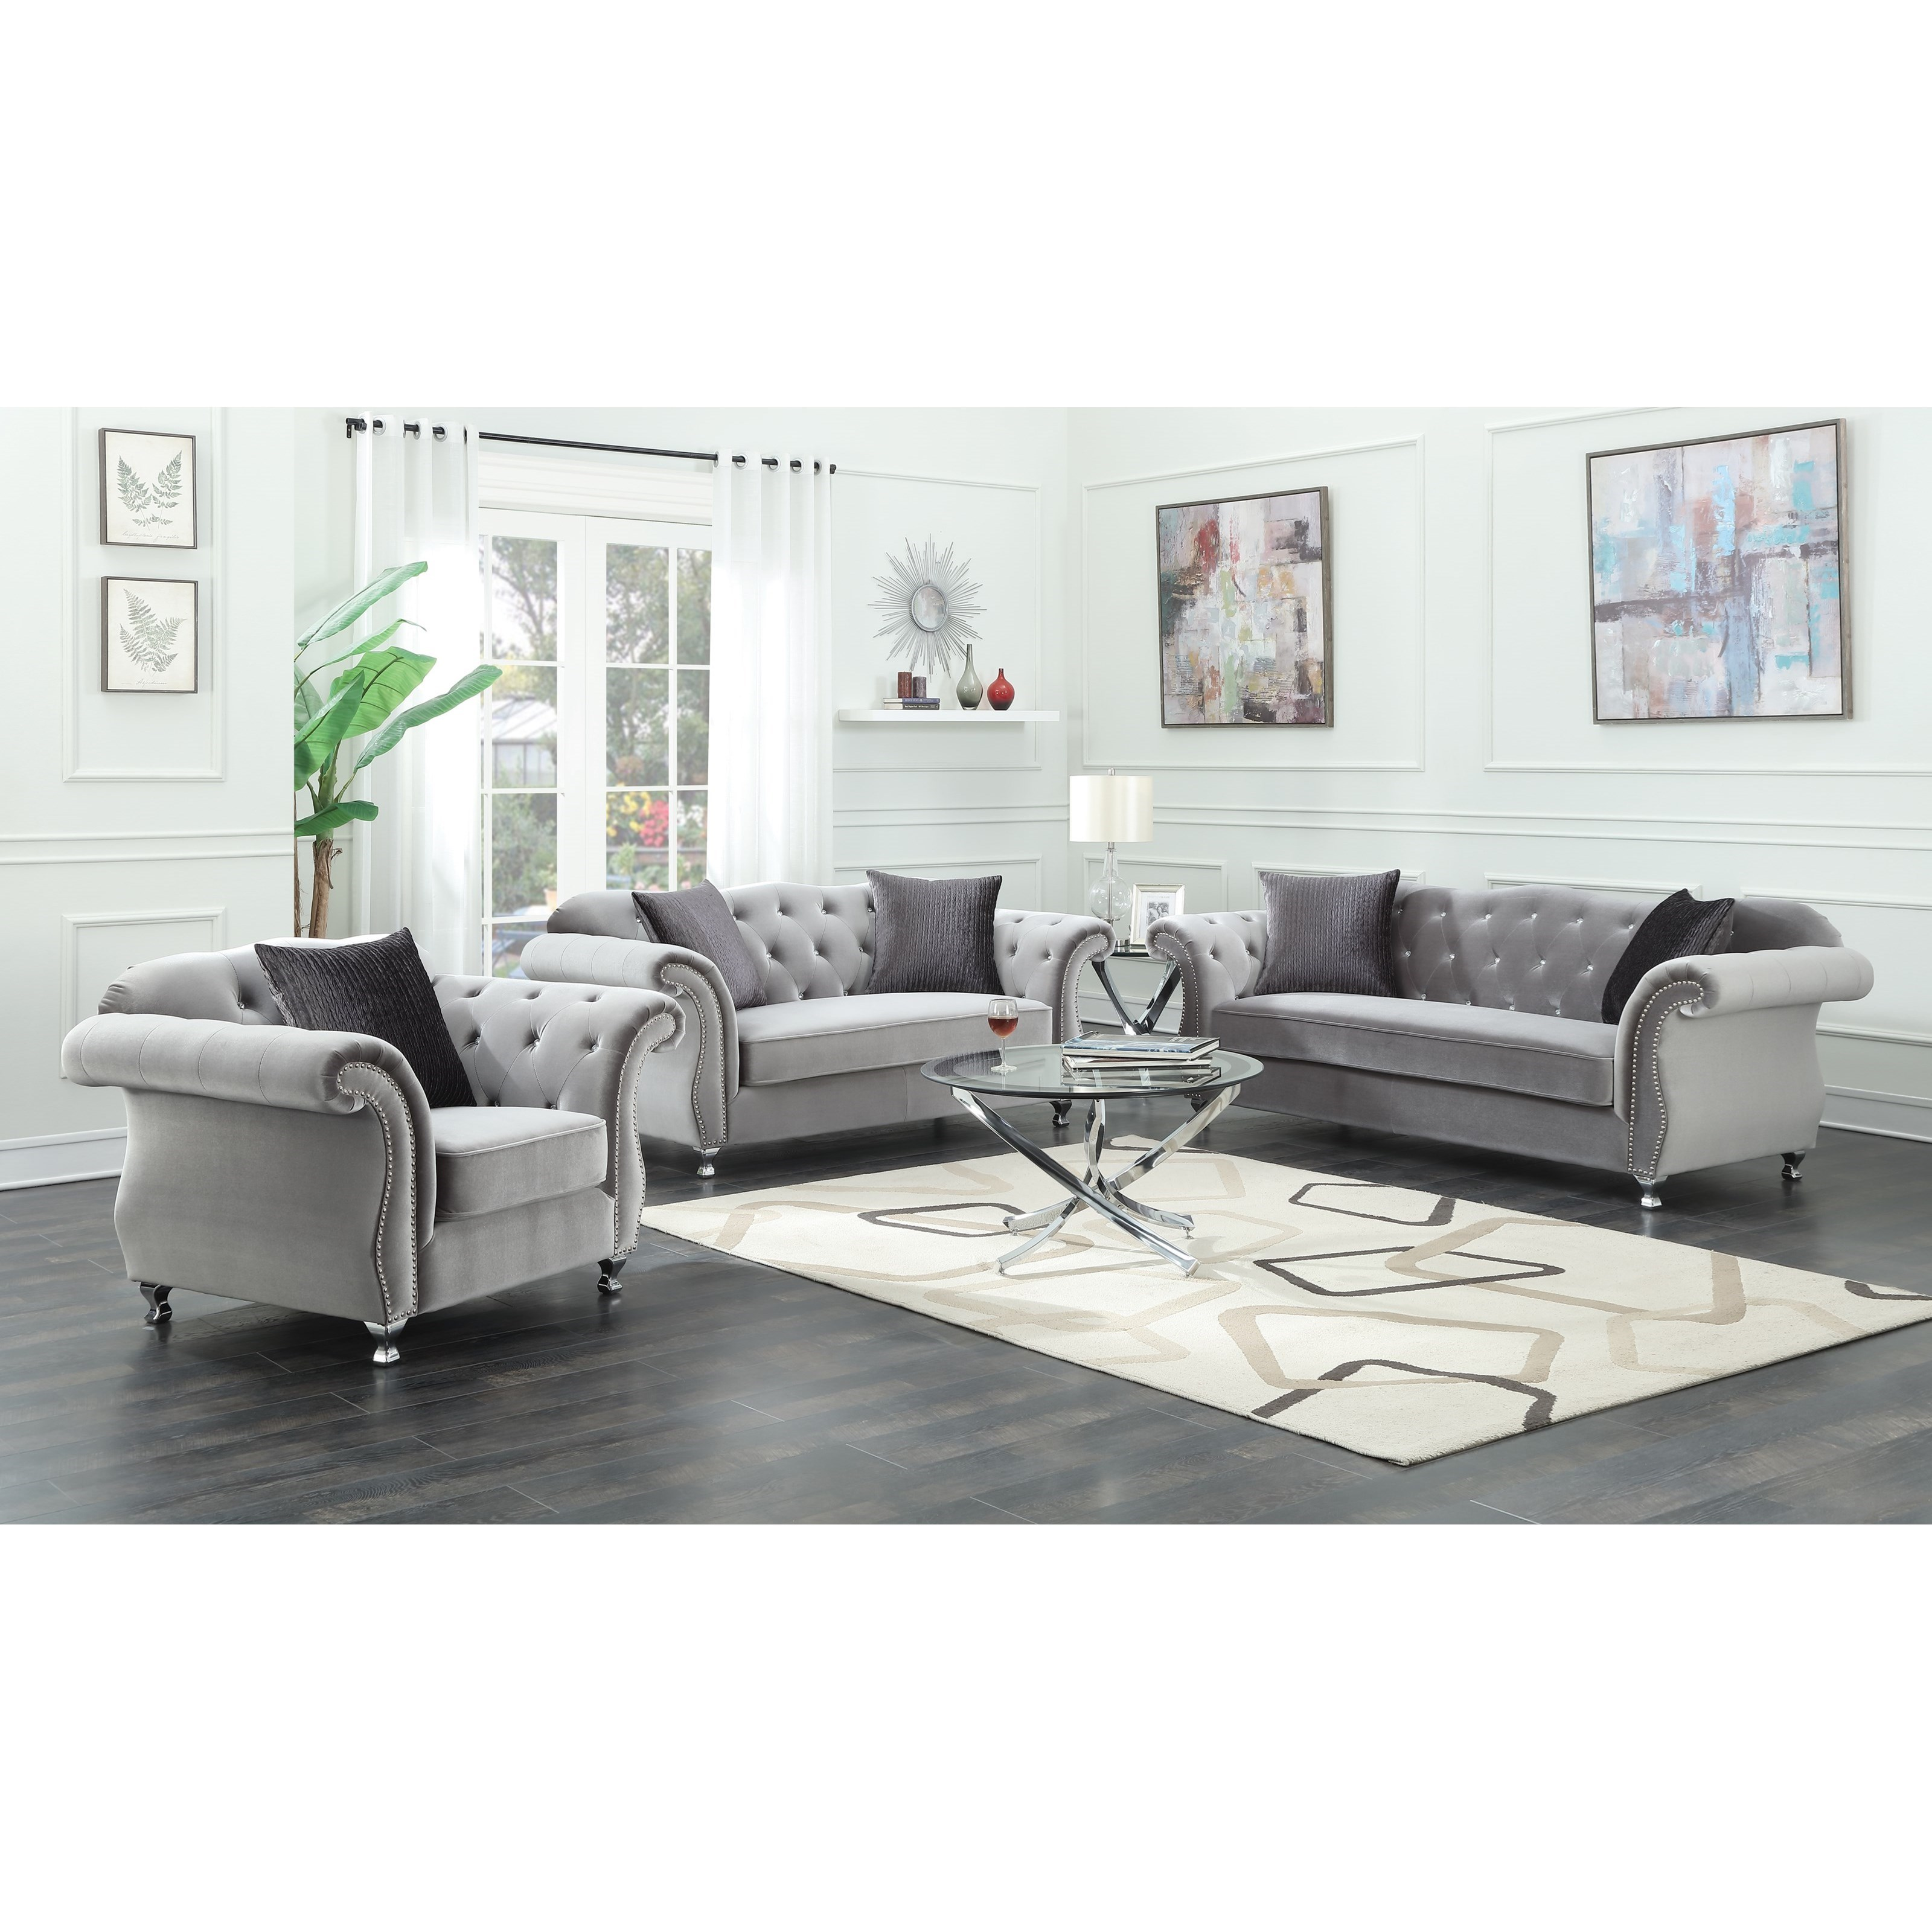 Frostine Stationary Living Room Group by Coaster at Pedigo Furniture